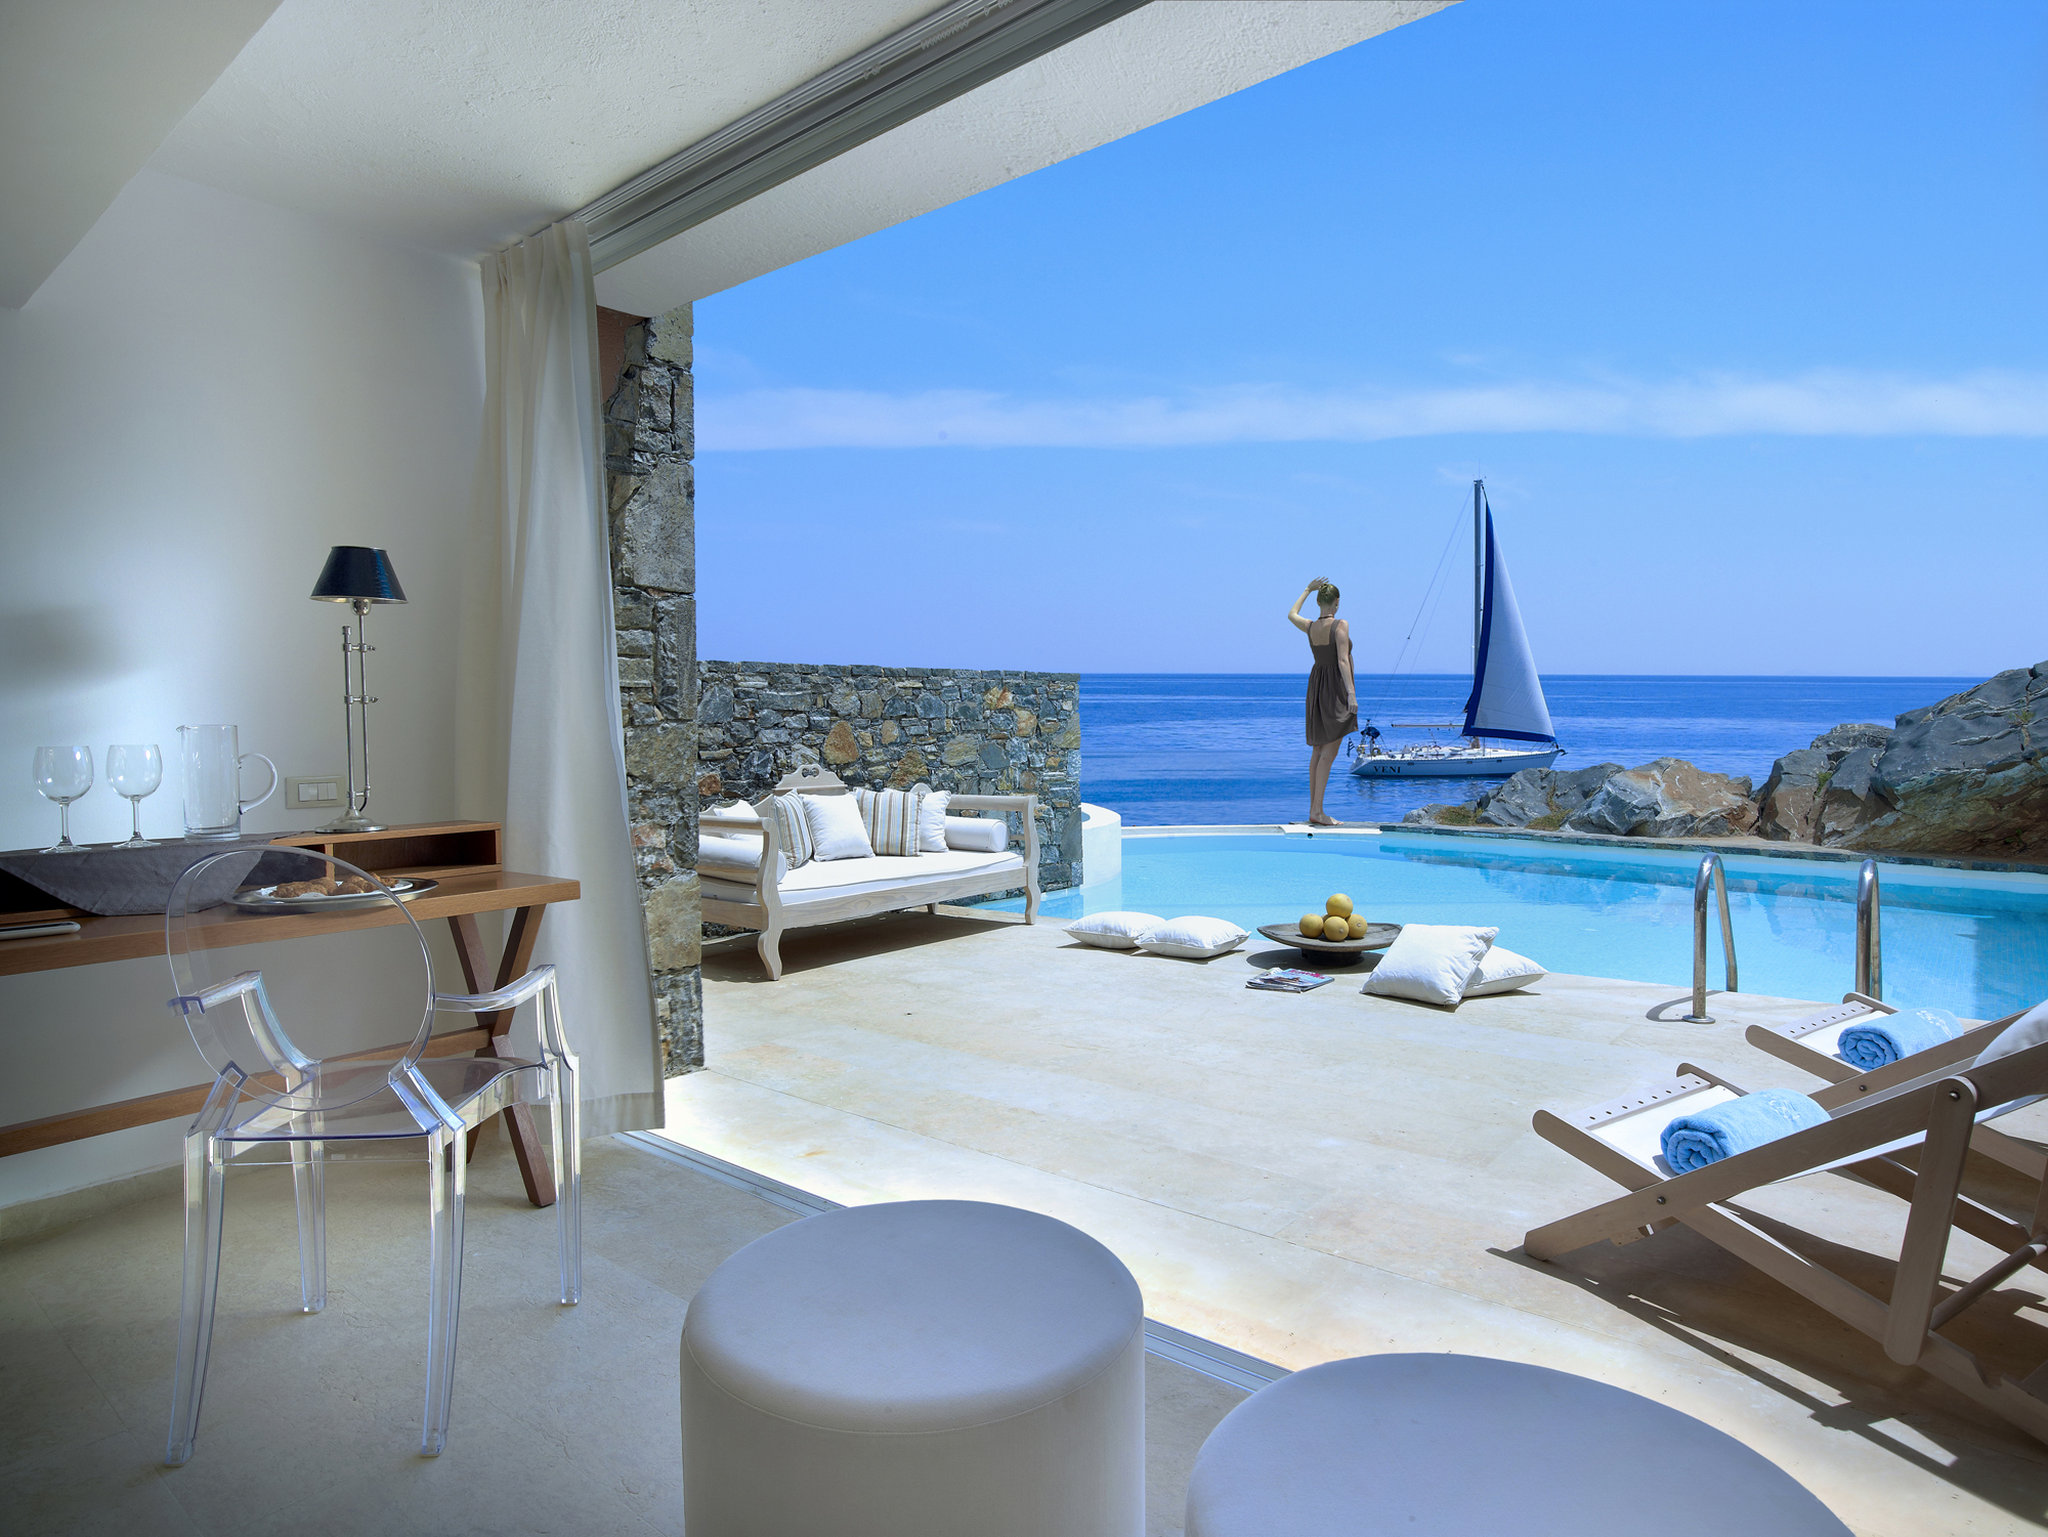 Small luxury hotels in the world the best for this season for Top luxury hotels